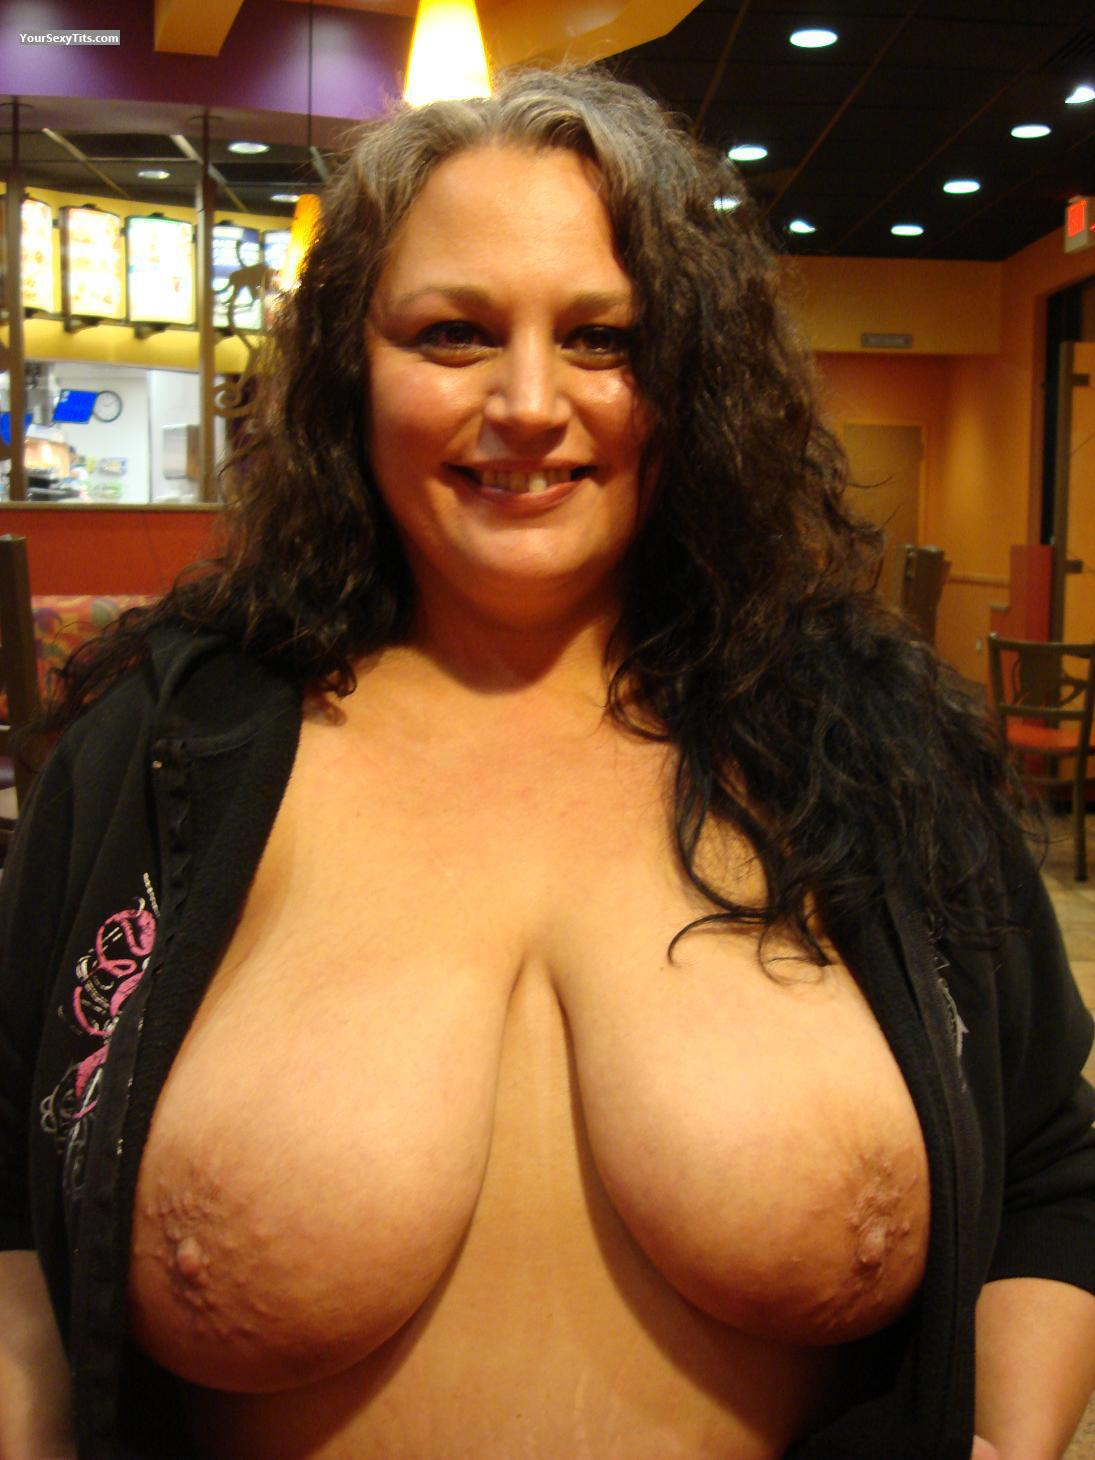 Images Of My Etremely Big Tits For Sale Beth Chapman Huge